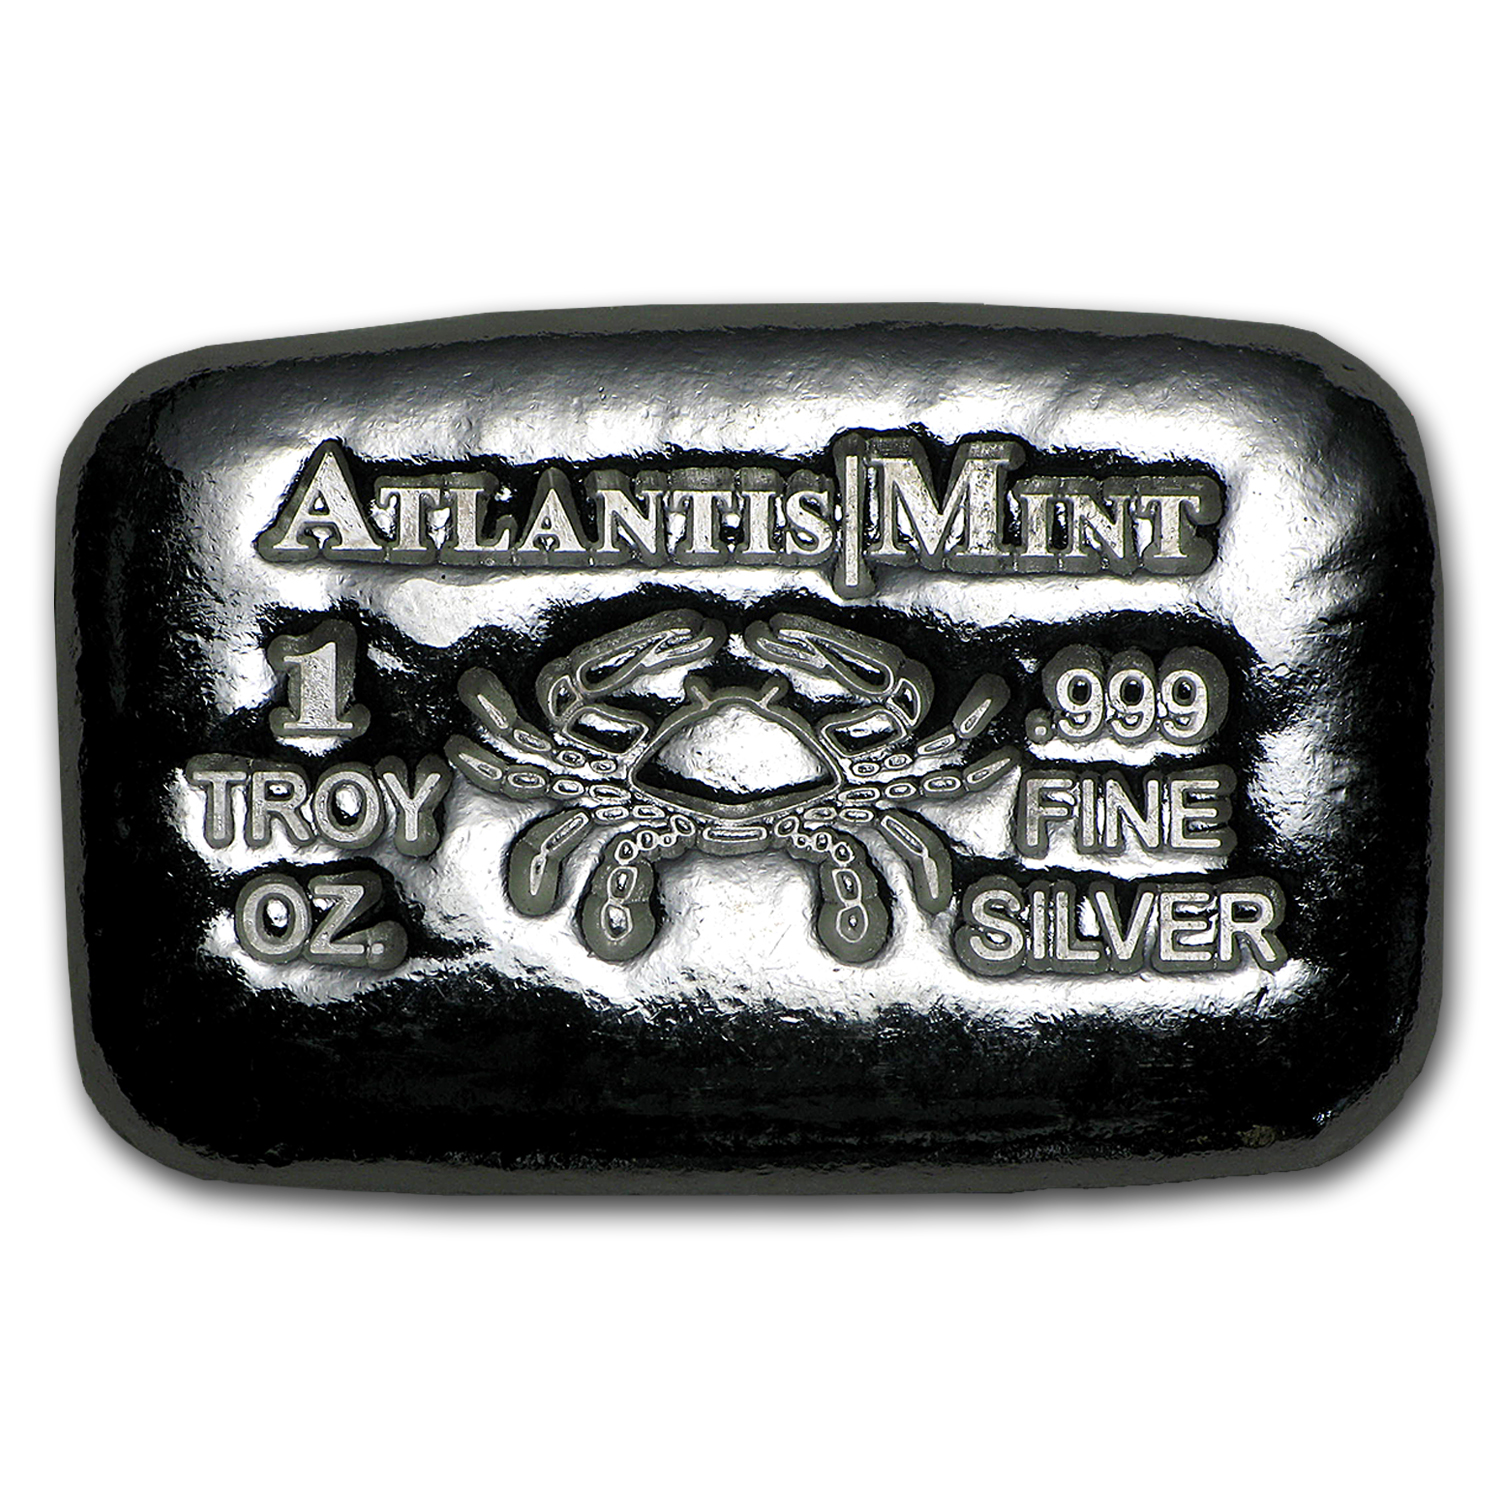 1 oz Silver Bar - Atlantis Mint (Zodiac Series, Cancer)